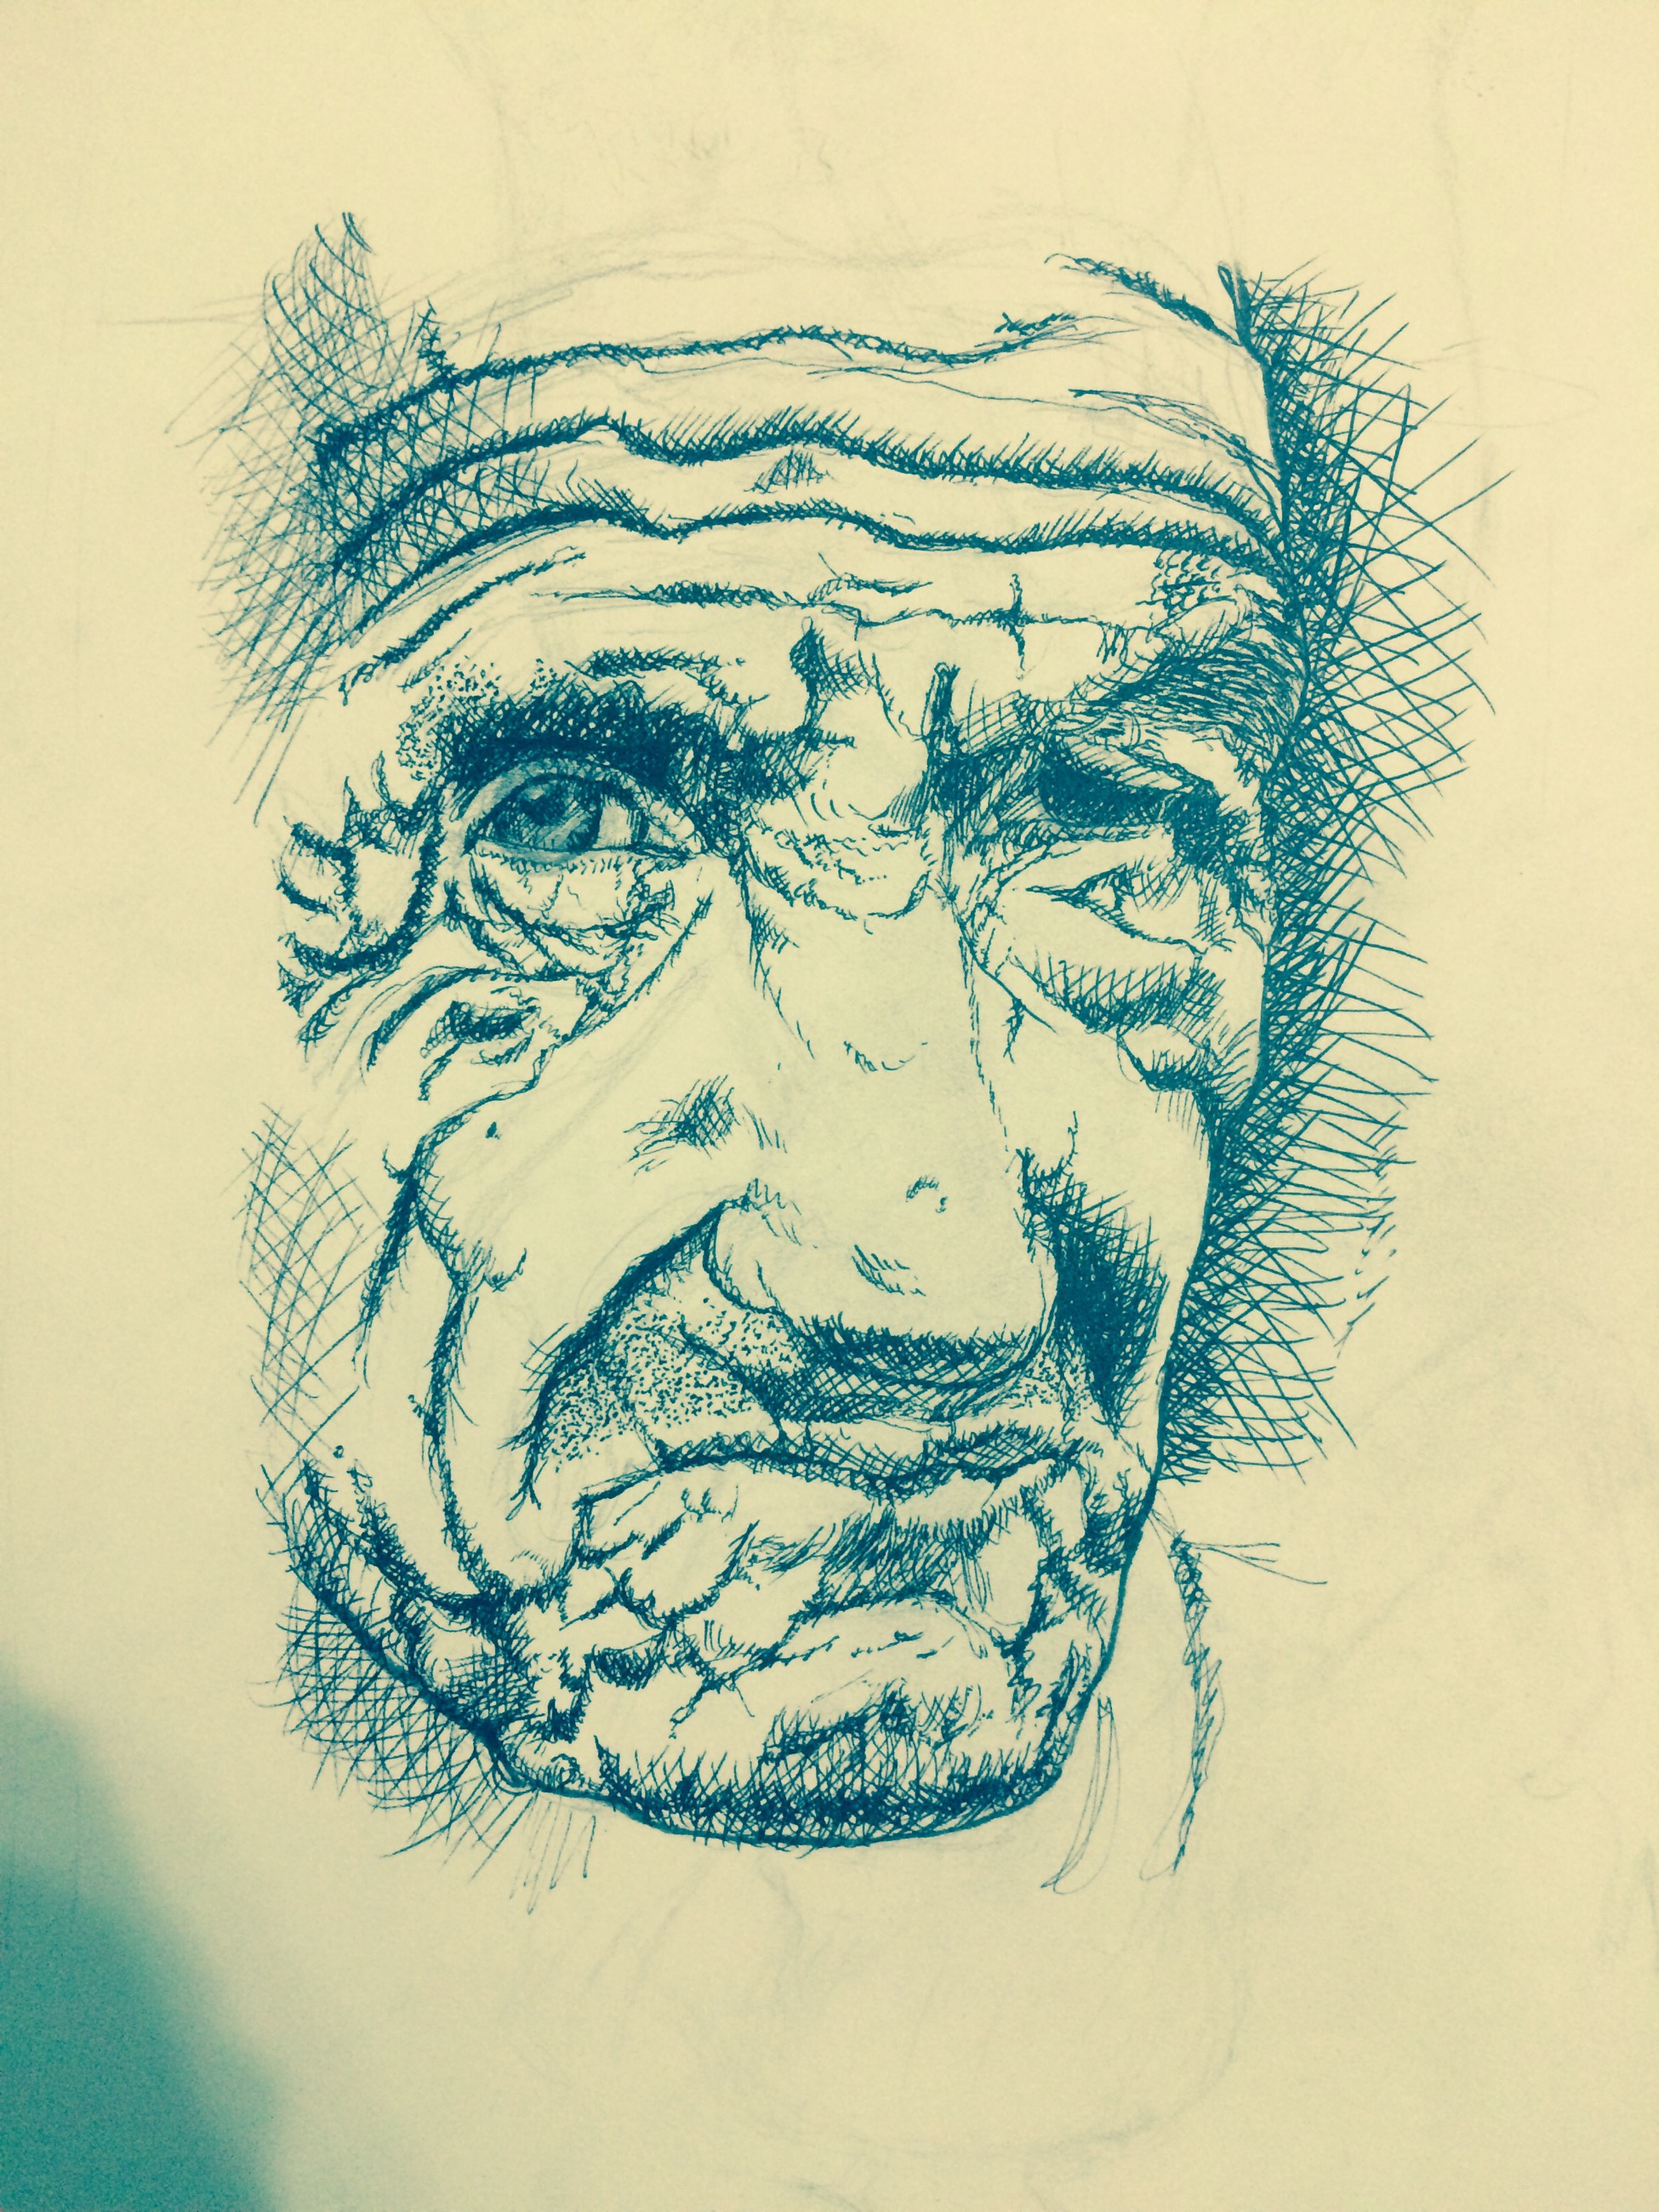 Old man's face